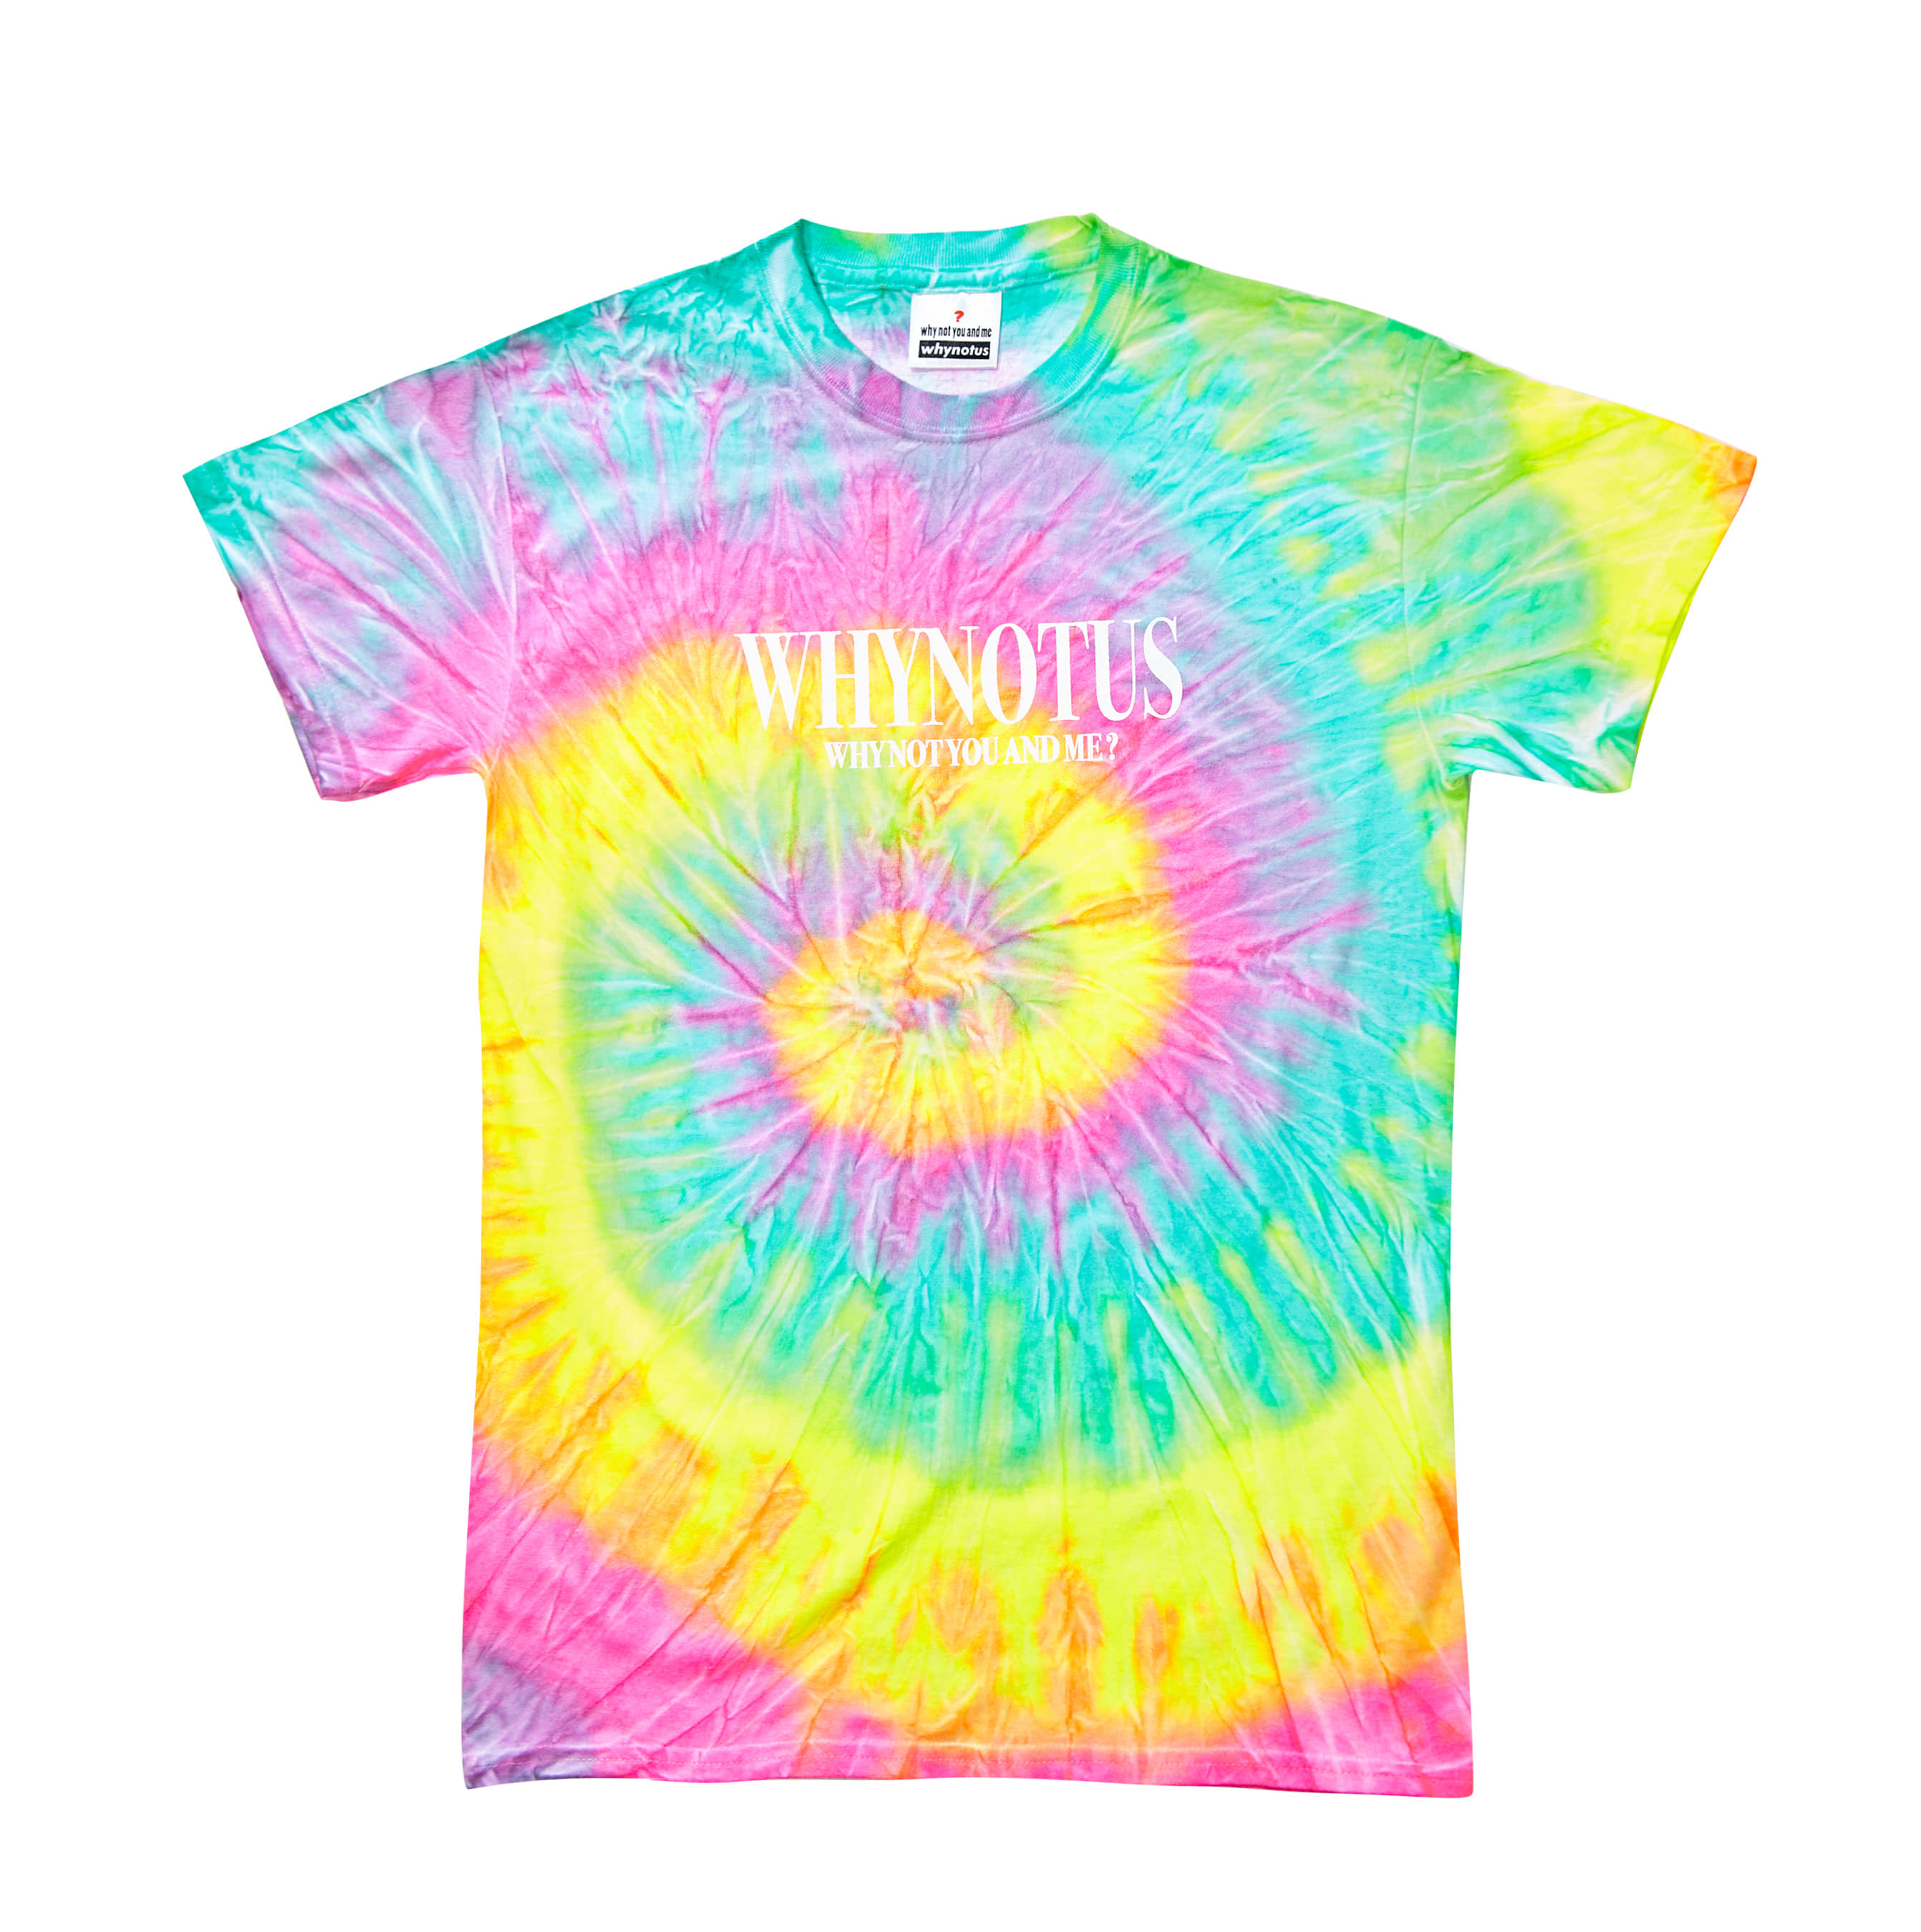 Tie dye T - cotton candy